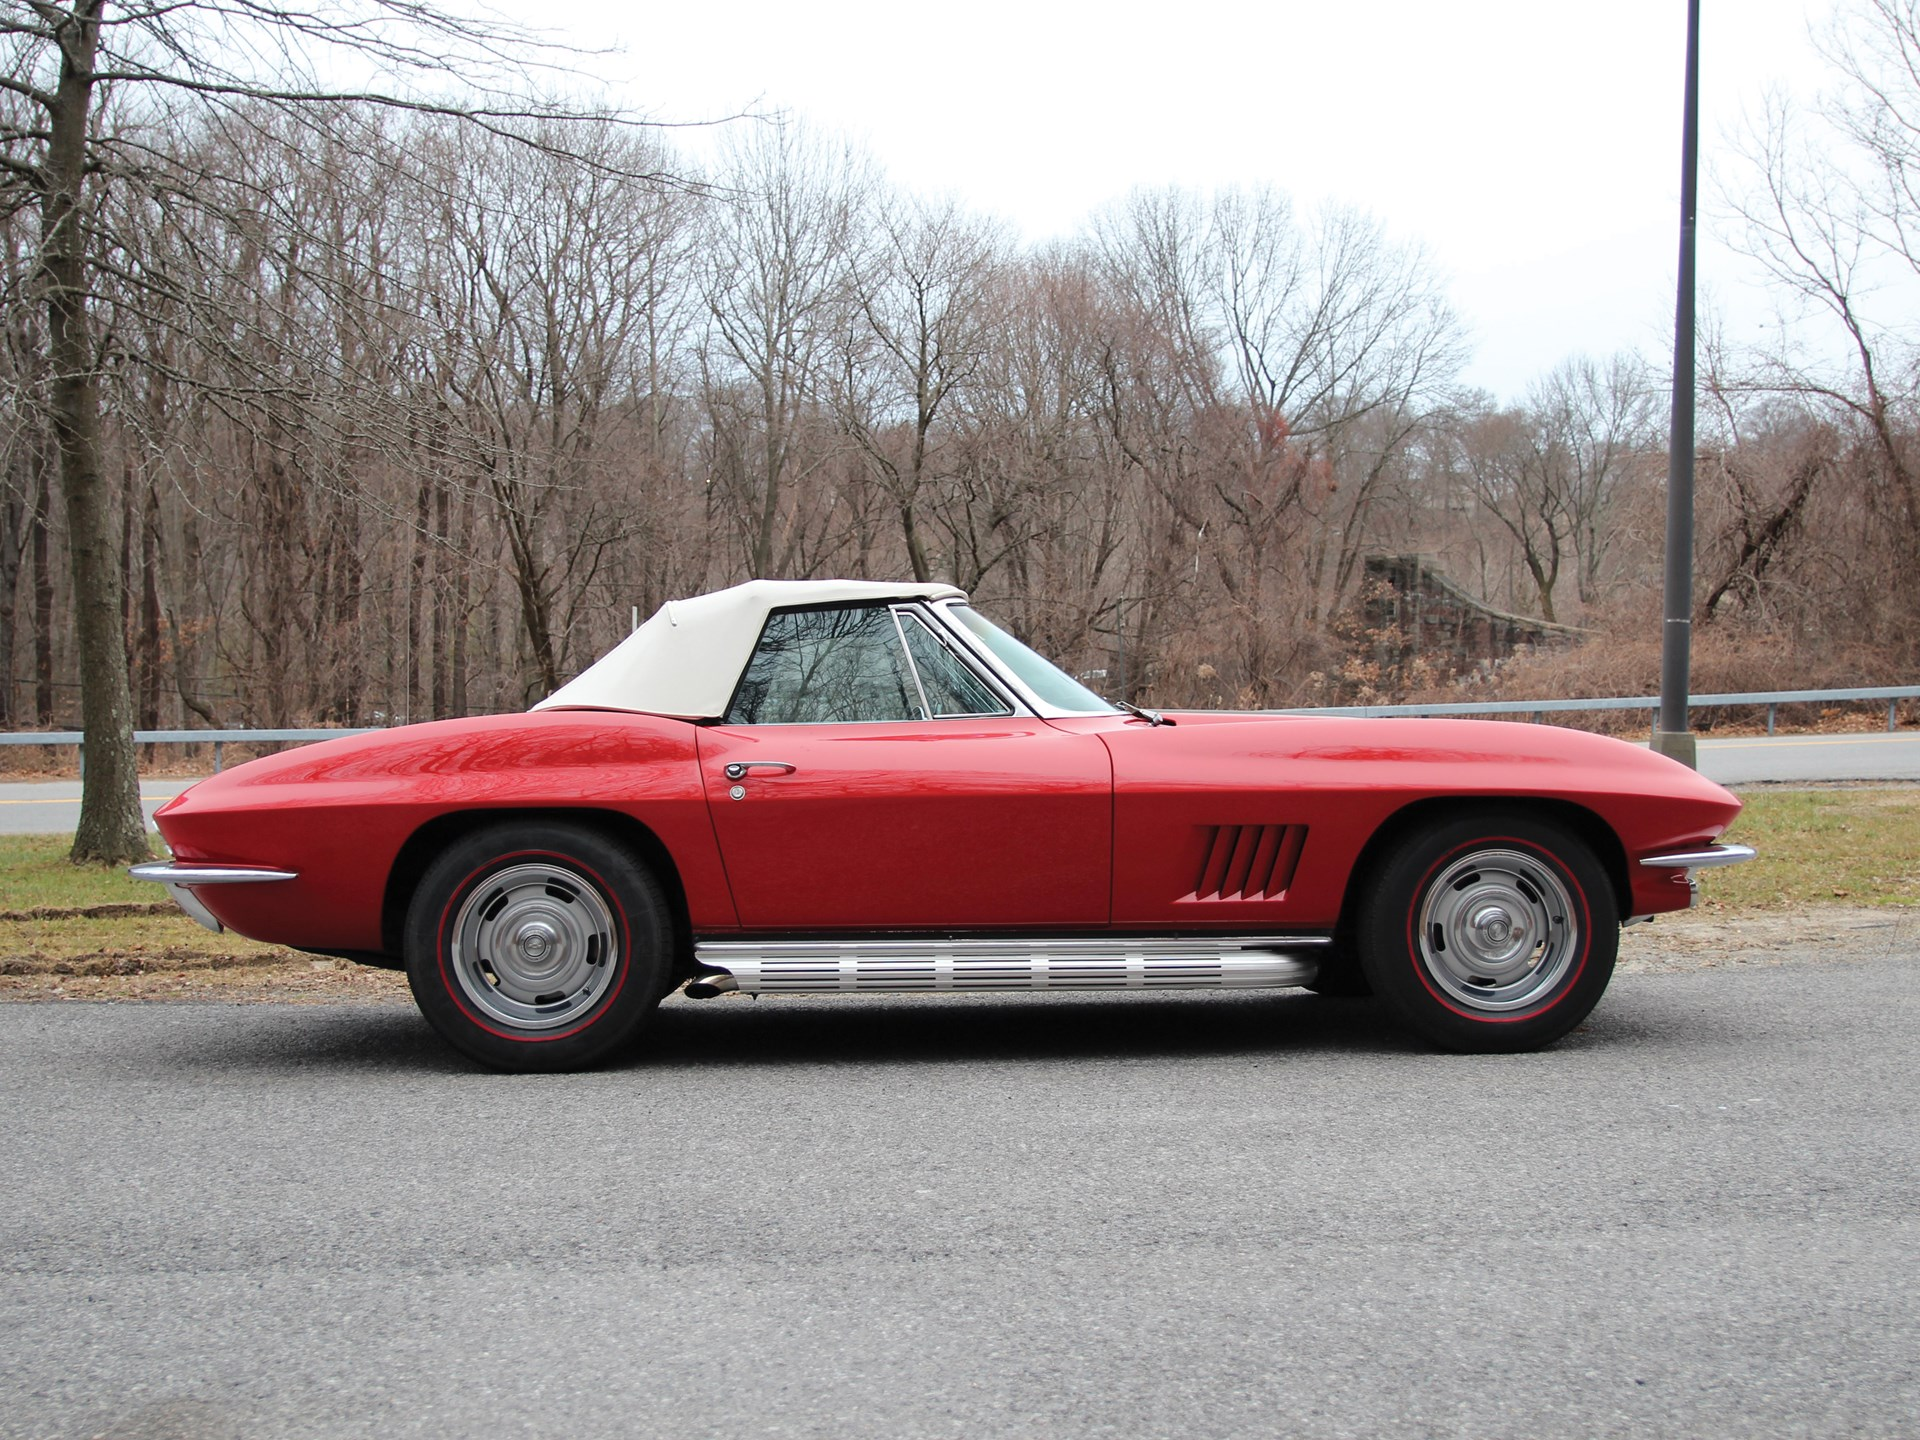 1967 Chevrolet Corvette Sting Ray 427/390 Convertible